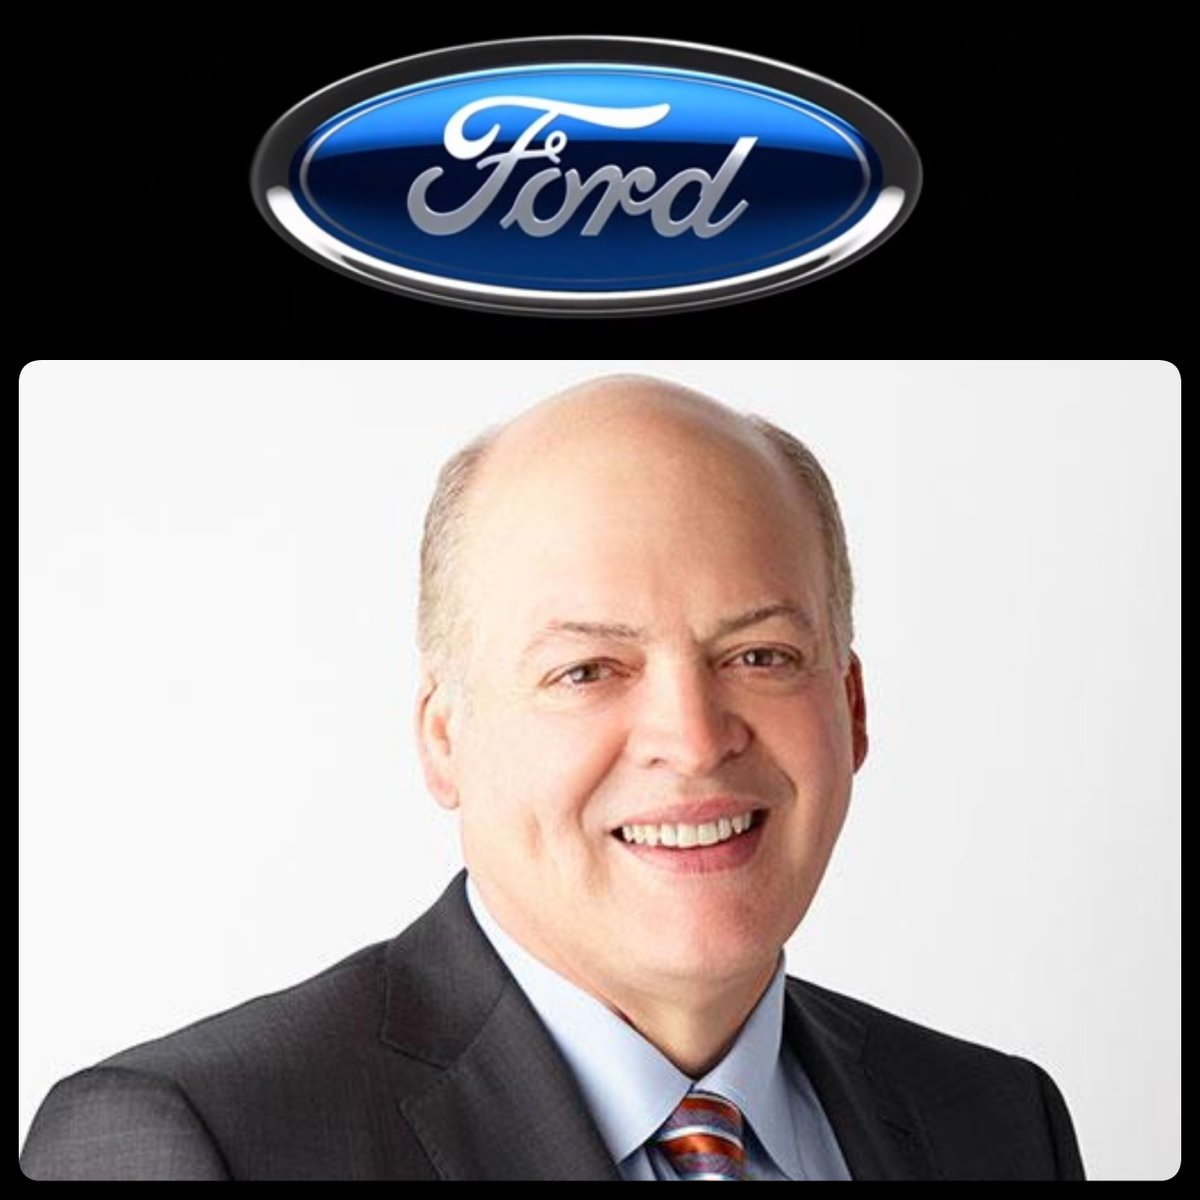 Jim #Hackett named as #Ford #Motor Company #president and #CEO succeeding Mark Fields who is #retiring #ford #raptor #trucks #truck #mustang<br>http://pic.twitter.com/CoXgHT86p6